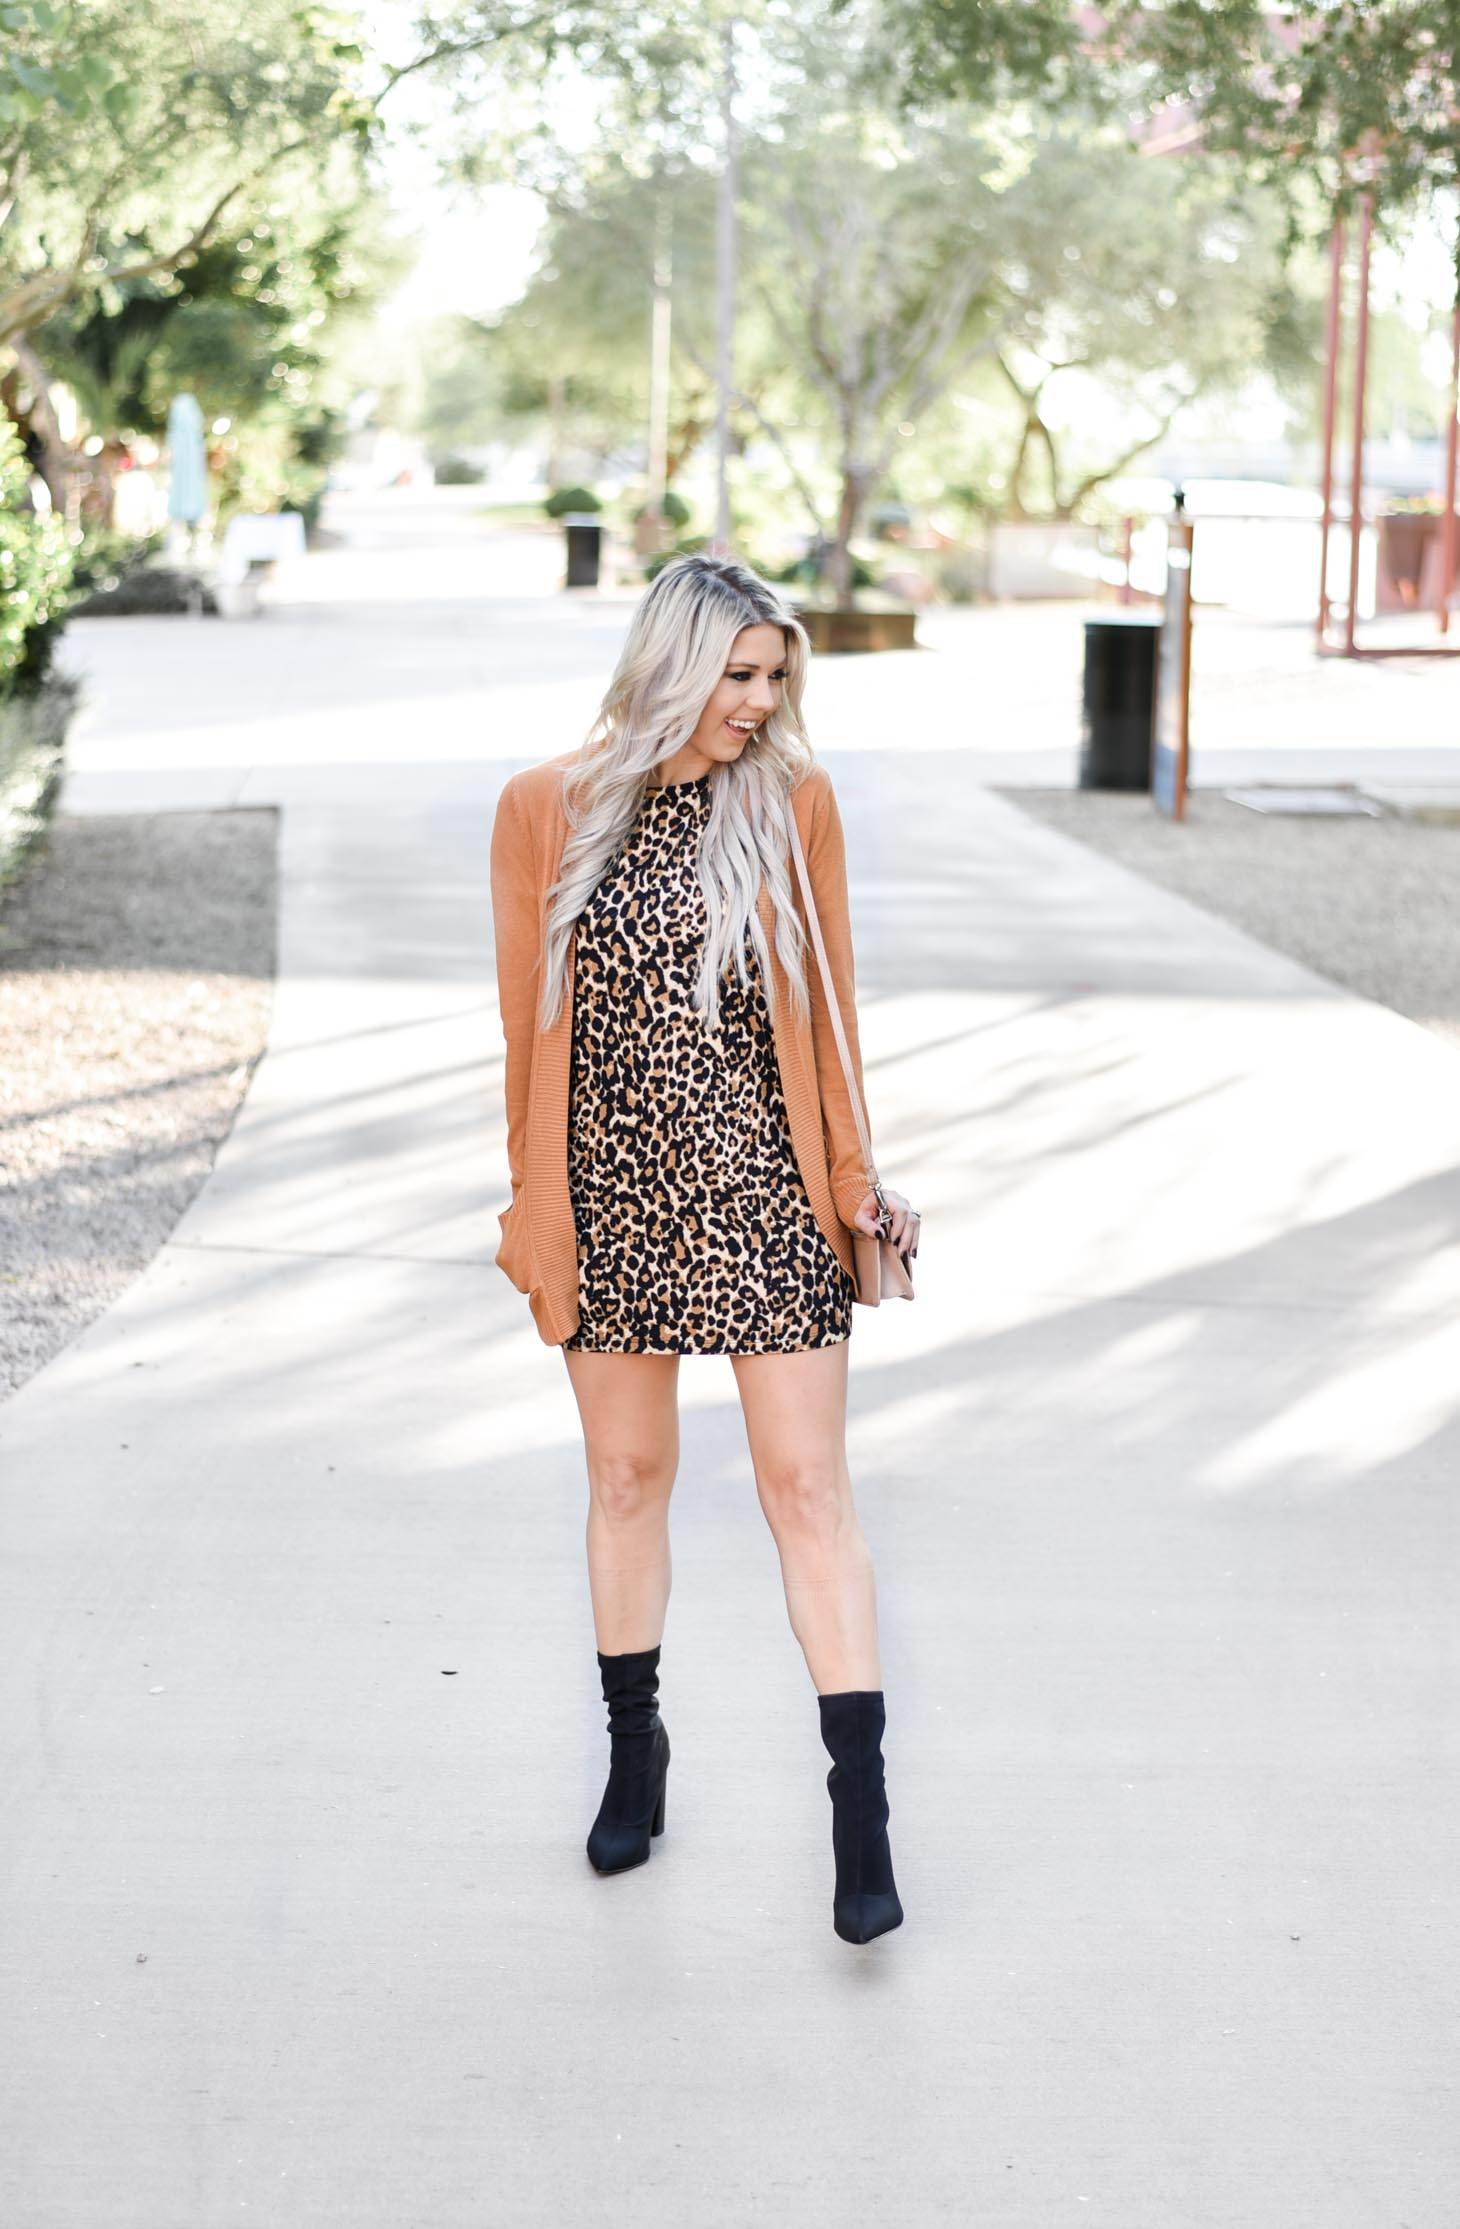 Leopard Prints and Cardigan Dreams graphic